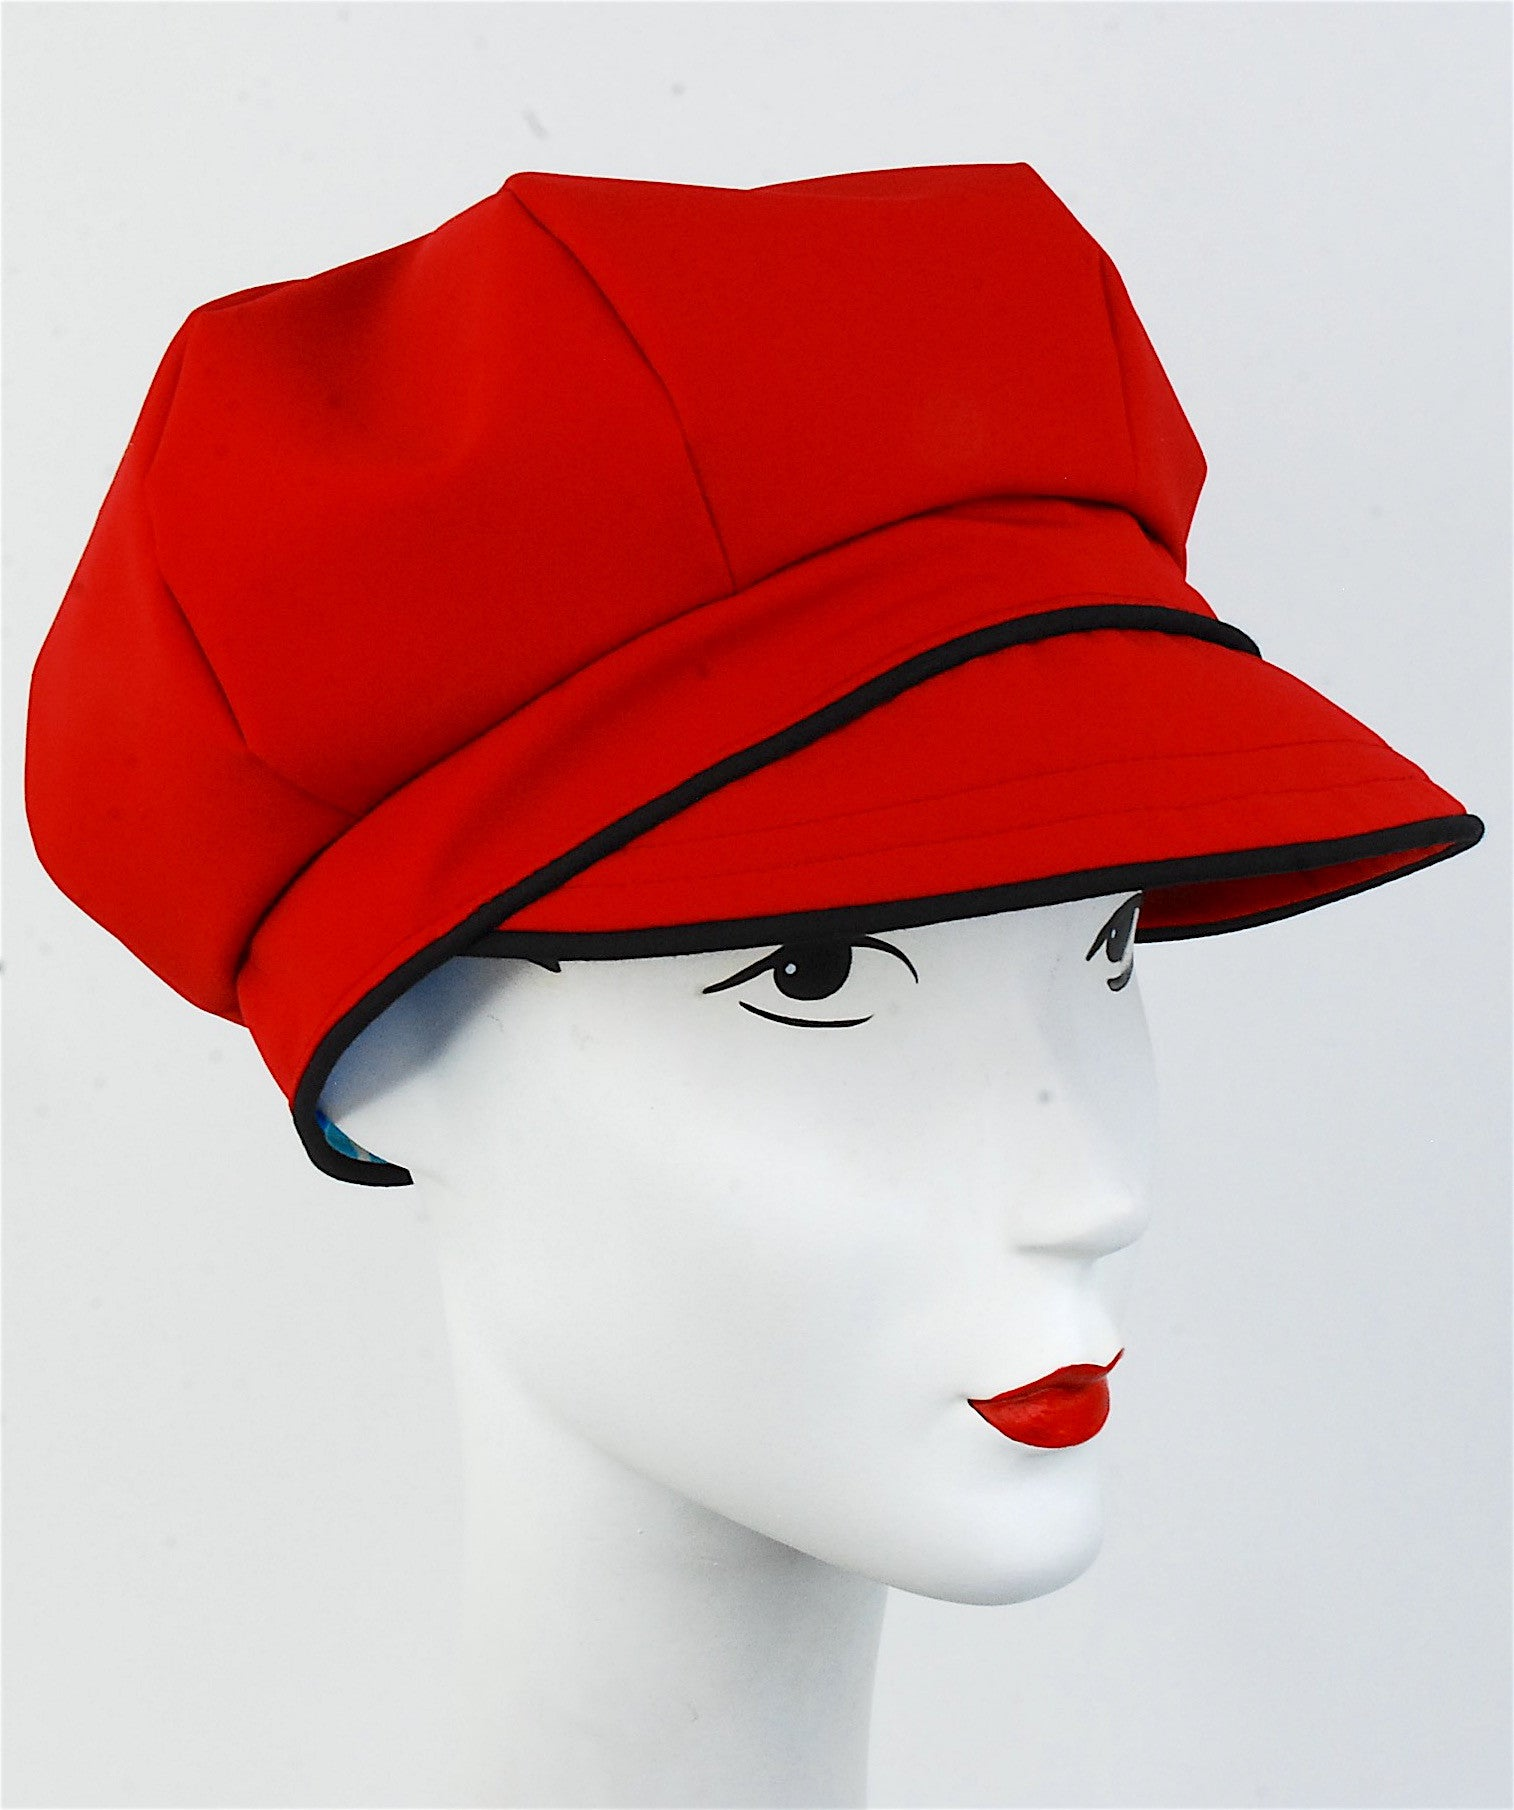 This darling waterproof and breathable fabric is amazing! Lightweight and perfect for stepping out in drizzly weather. Packs well in a bag and you can just throw it one when you need some protection from the weather. The cap is a darker red color, not an orange tone at all. Will compliment many skin tones. This hat is made to order in your head size.